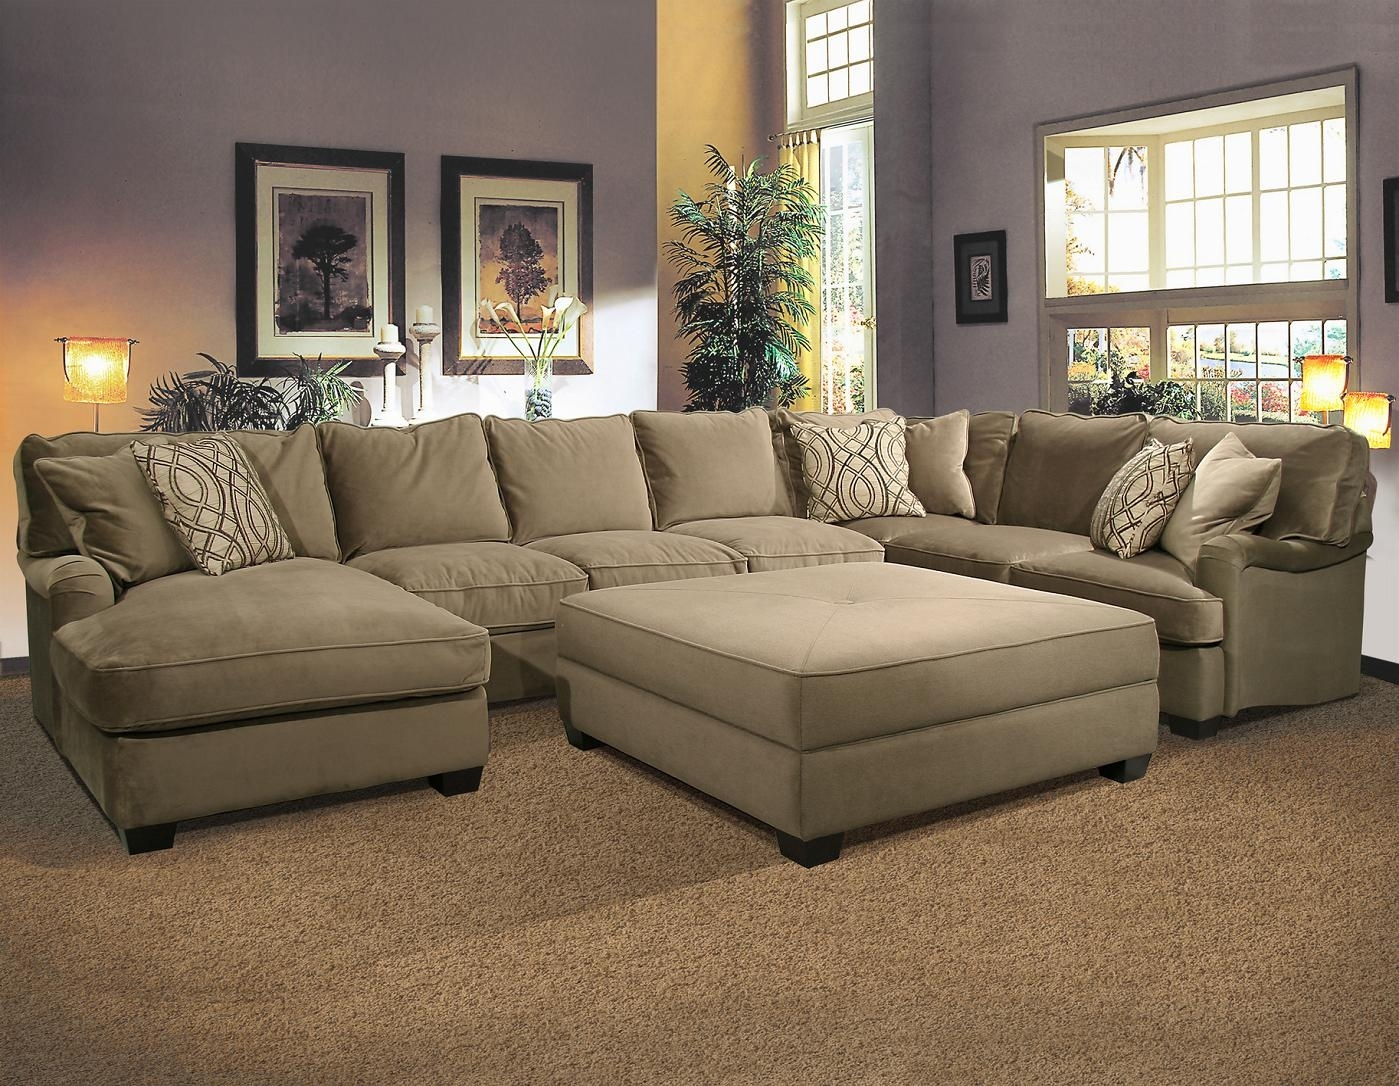 Bostonian Sectional Sofafairmont Seating | Home | Pinterest Inside Sofas With Large Ottoman (Image 1 of 10)